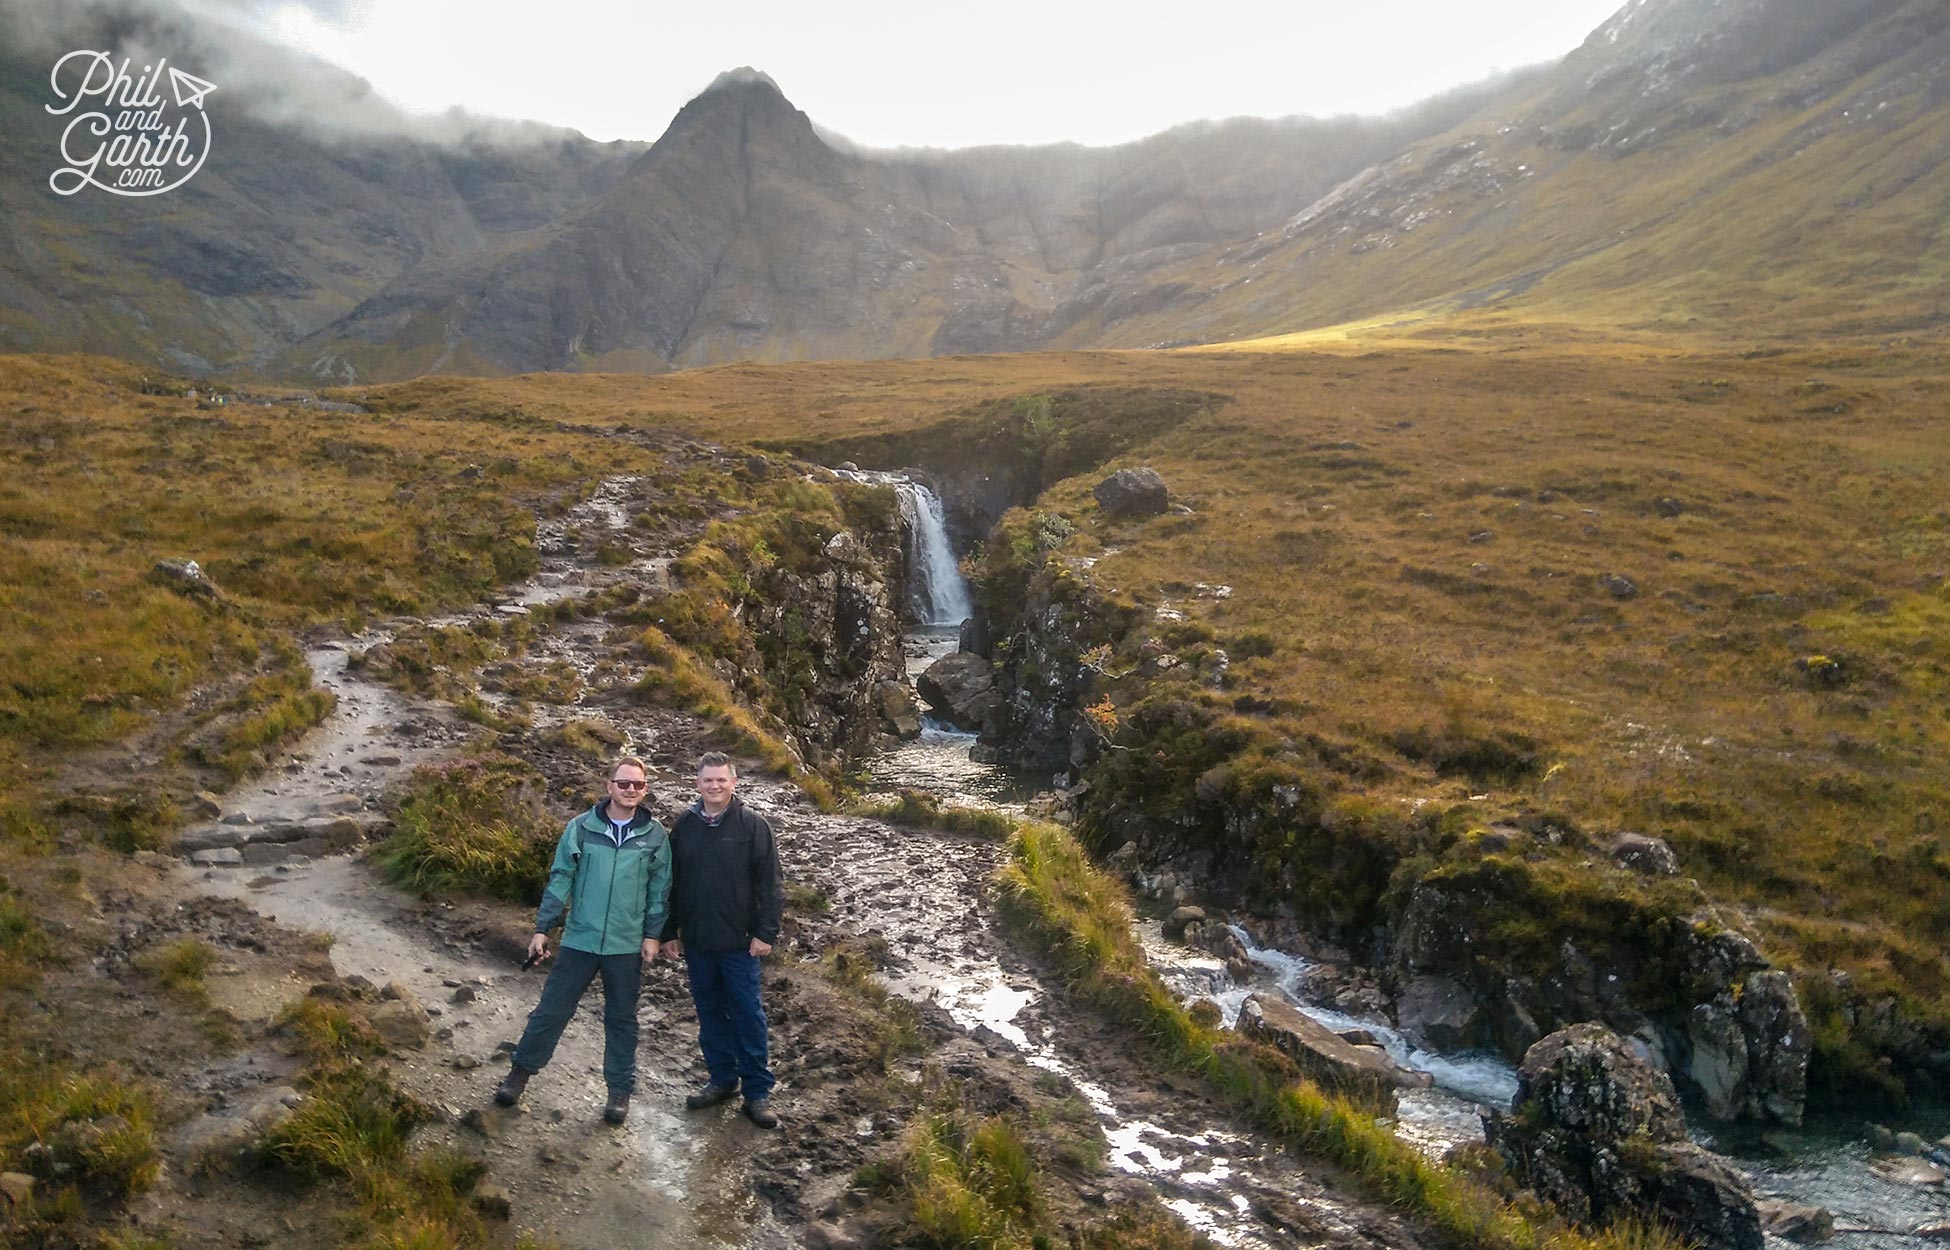 Phil and Garth at the Fairy Pools